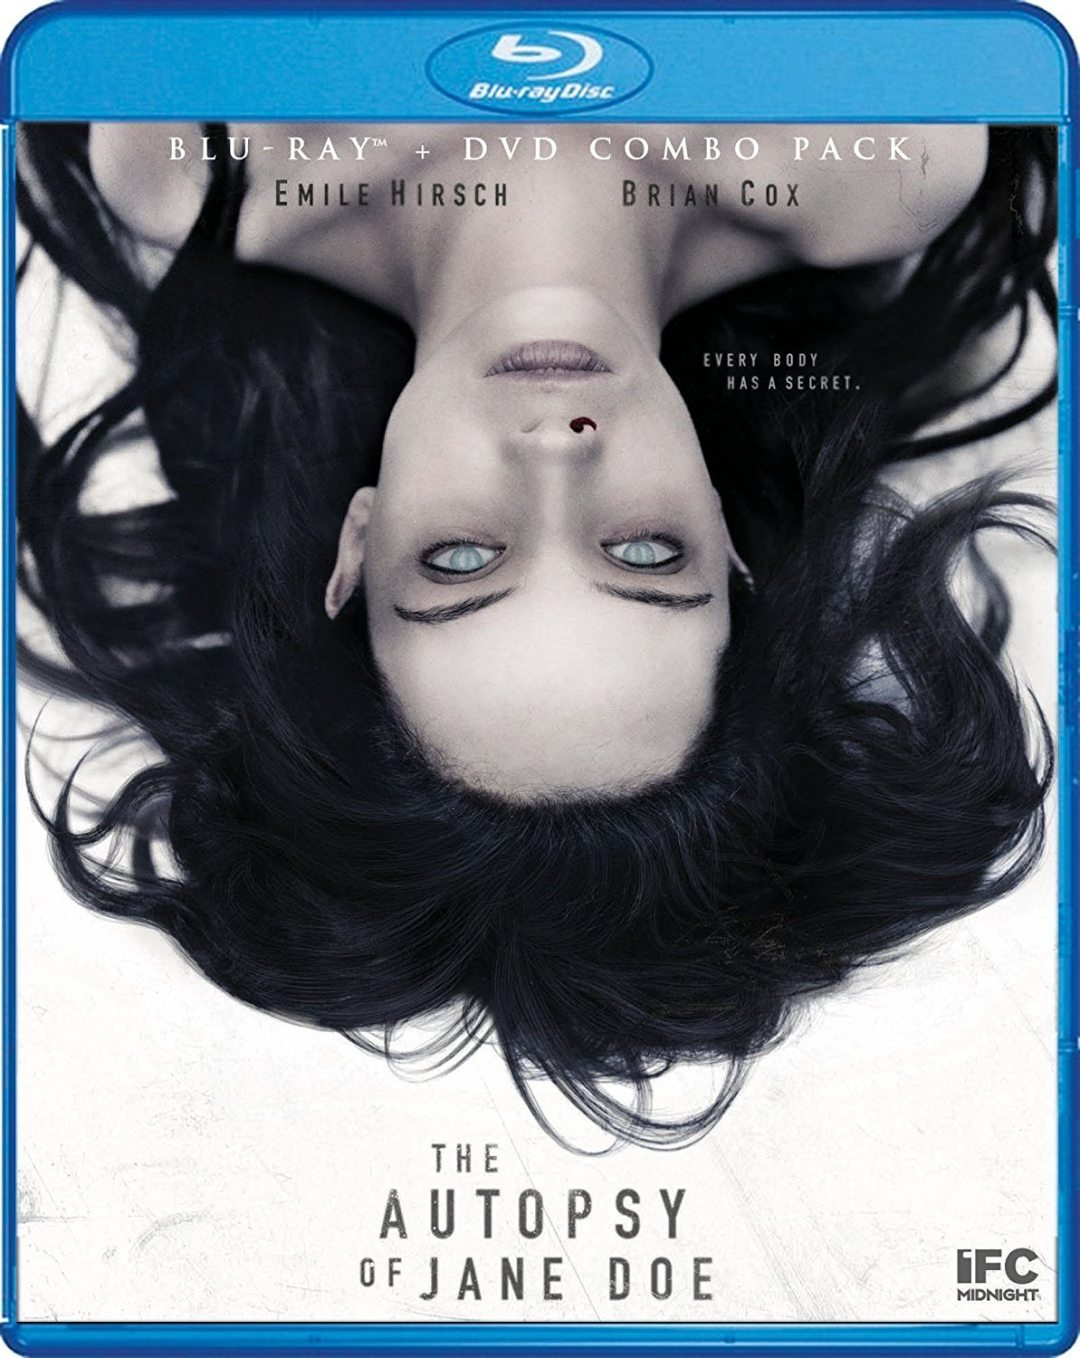 The Autopsy of Jane Doe – Blu-ray/DVD Review